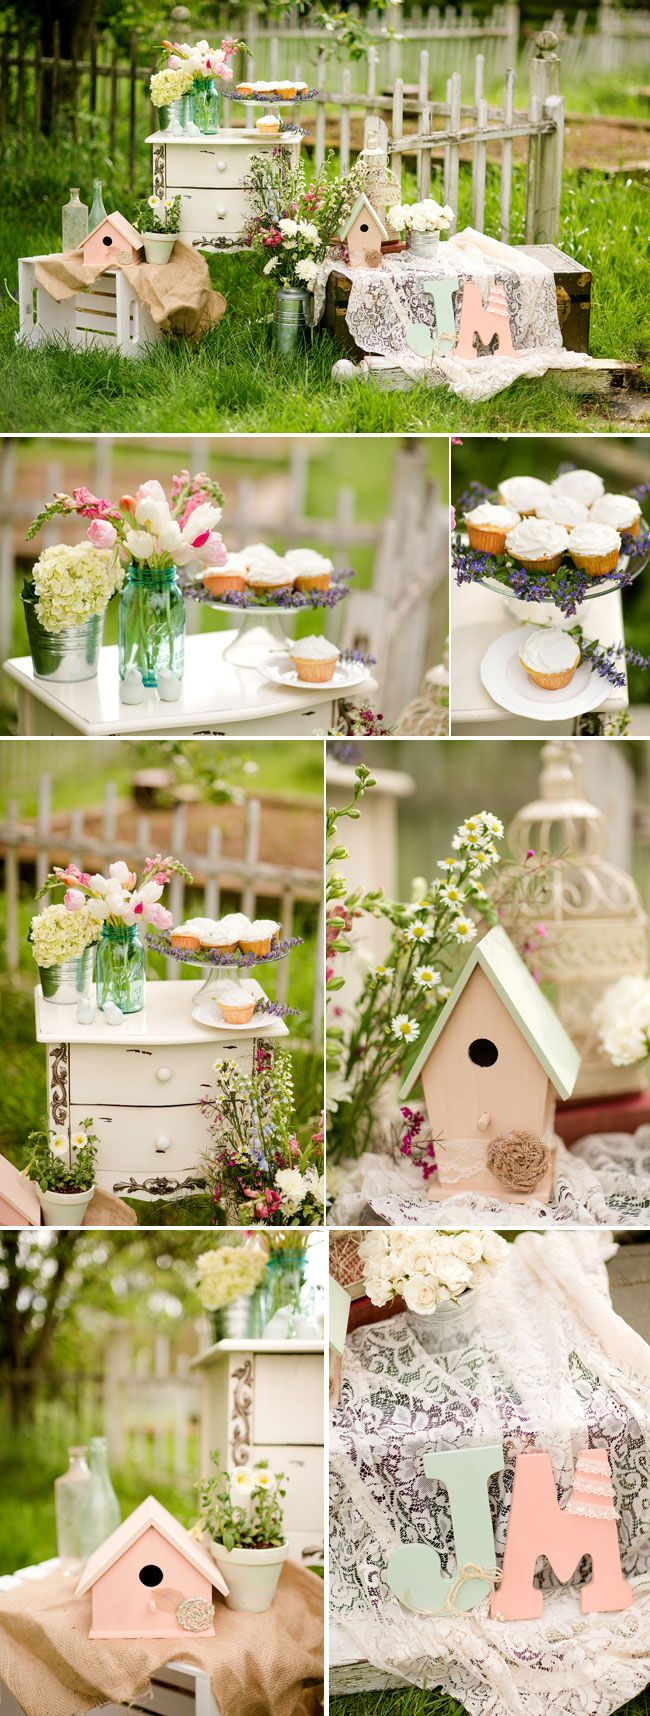 366 best Garden Party and Tablescapes images on Pinterest | Table ...